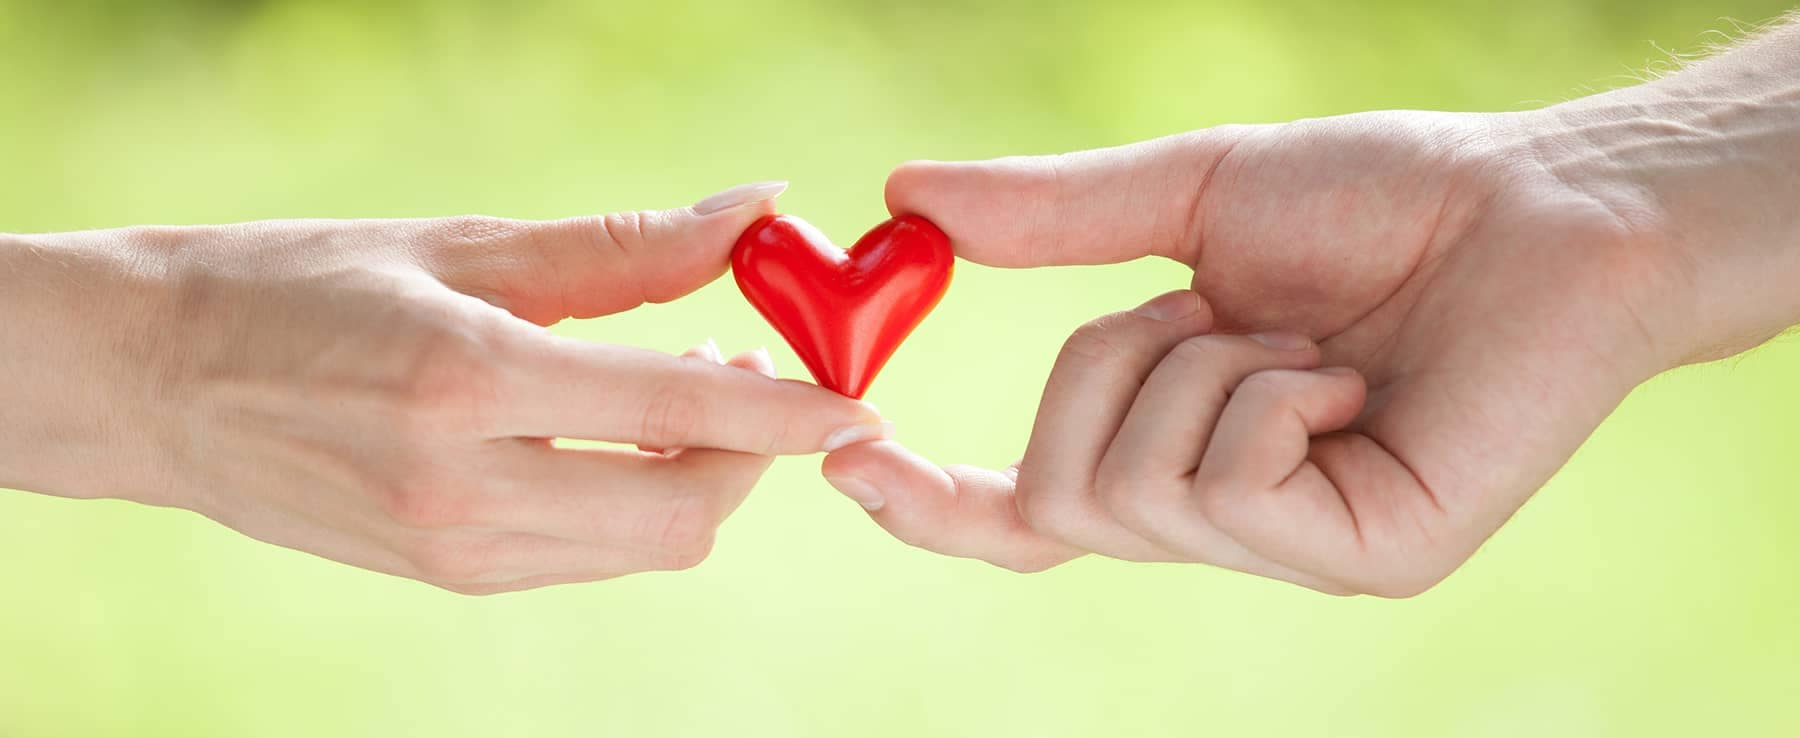 two people's hands holding a small heart